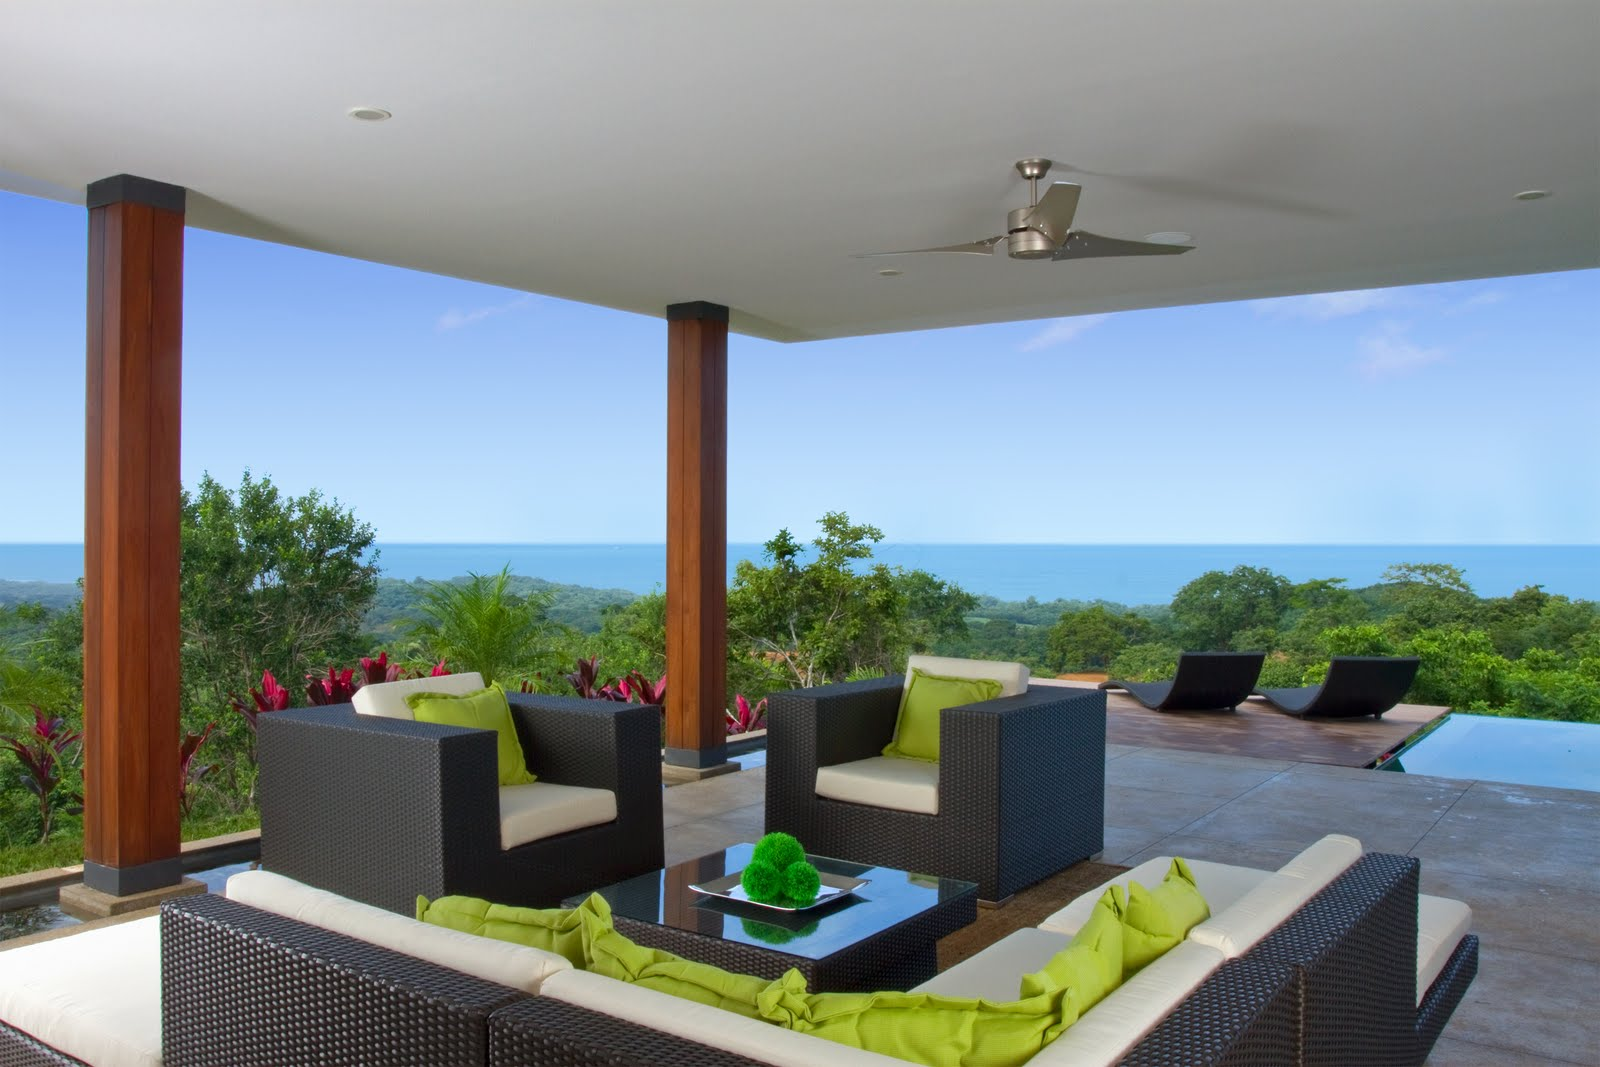 Jet luxury resorts costa rica luxury vacation rental for Luxury vacation costa rica